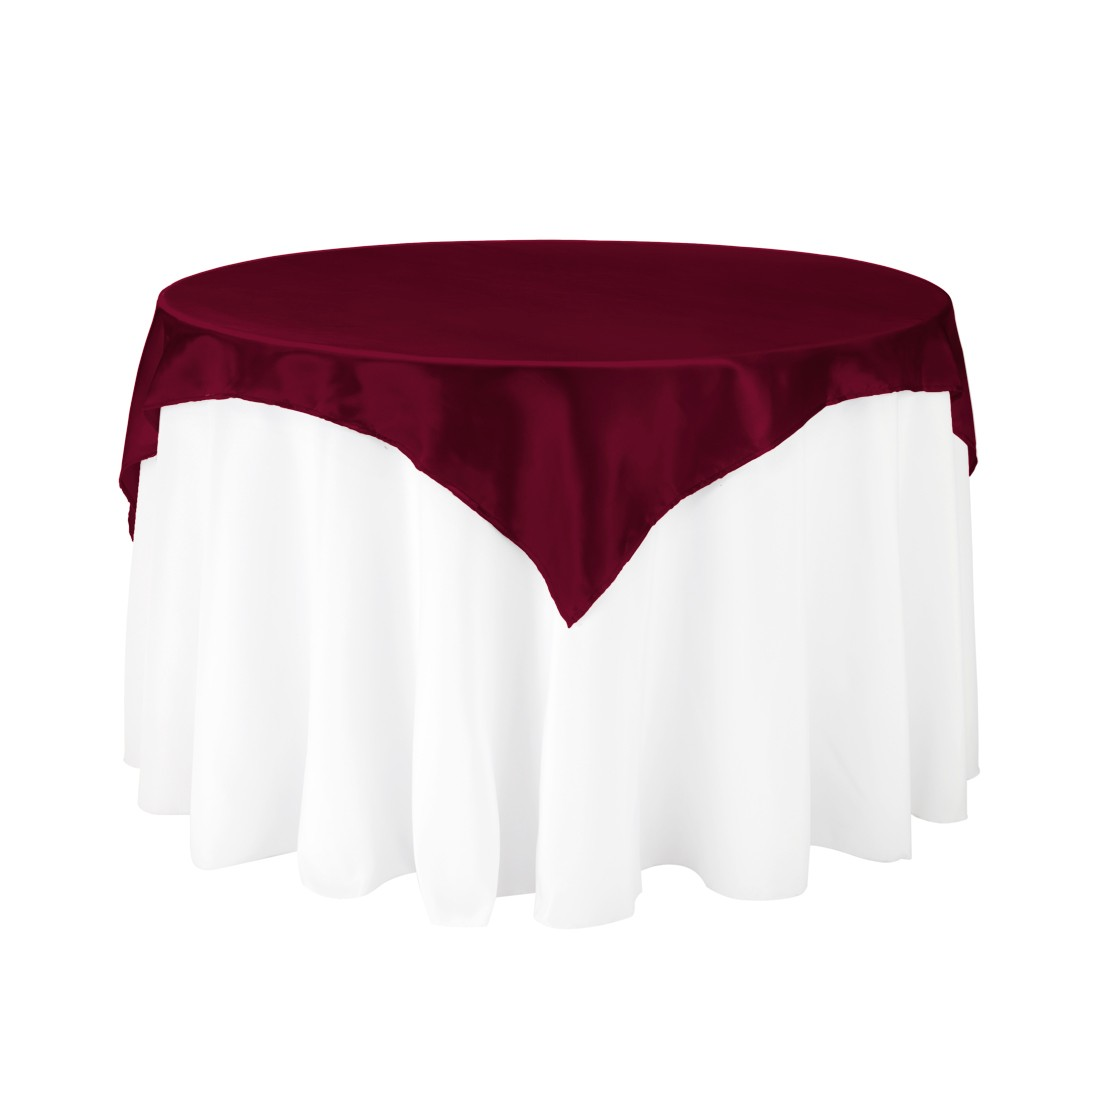 60-inch-square-satin-overlay-burgundy-default